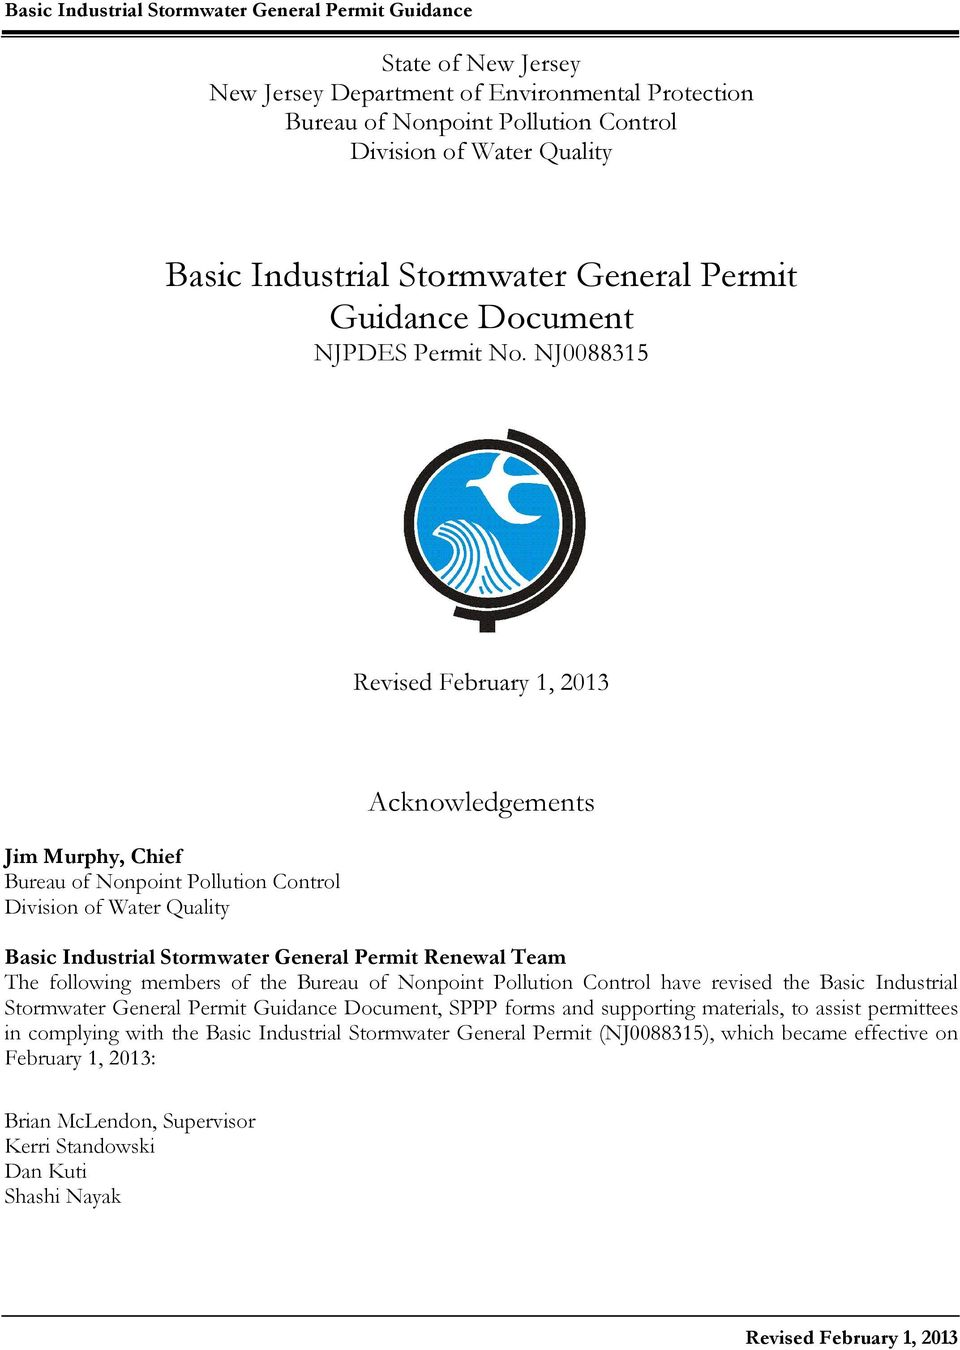 NJ0088315 Jim Murphy, Chief Bureau of Nonpoint Pollution Control Division of Water Quality Acknowledgements Basic Industrial Stormwater General Permit Renewal Team The following members of